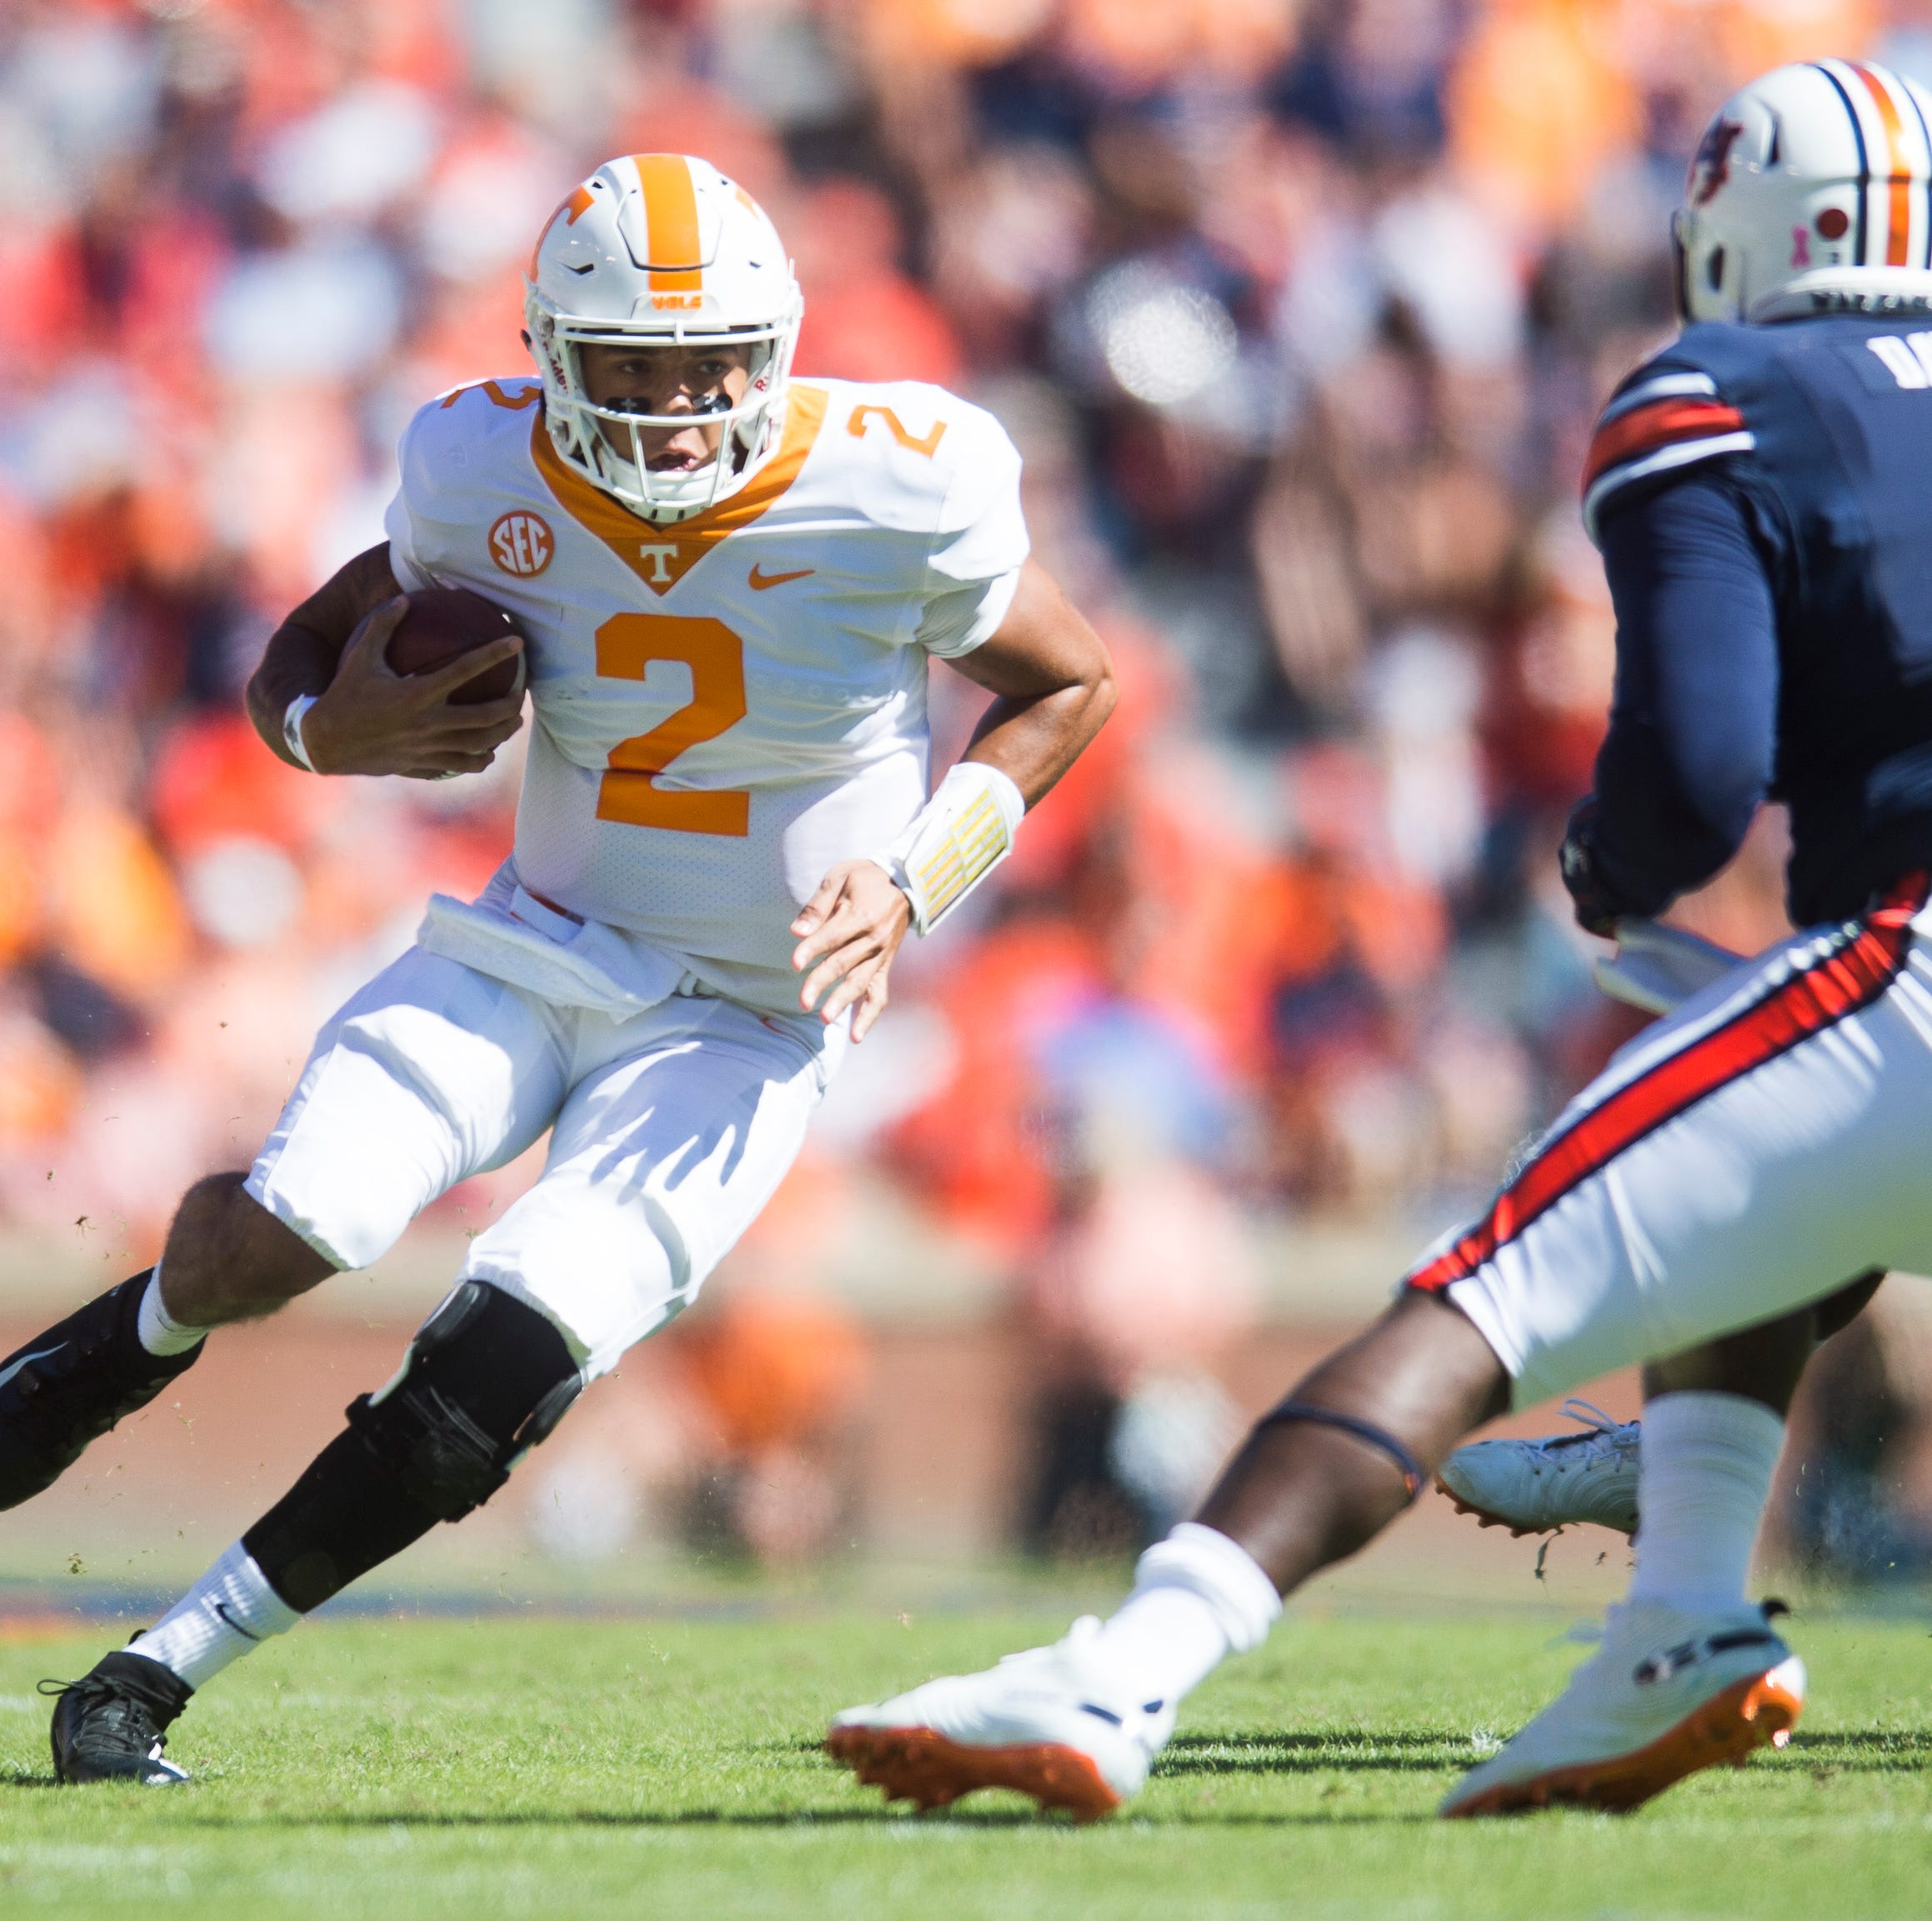 UT Vols: Kirk Herbstreit tells Jarrett Guarantano to 'keep grinding' after beating Auburn